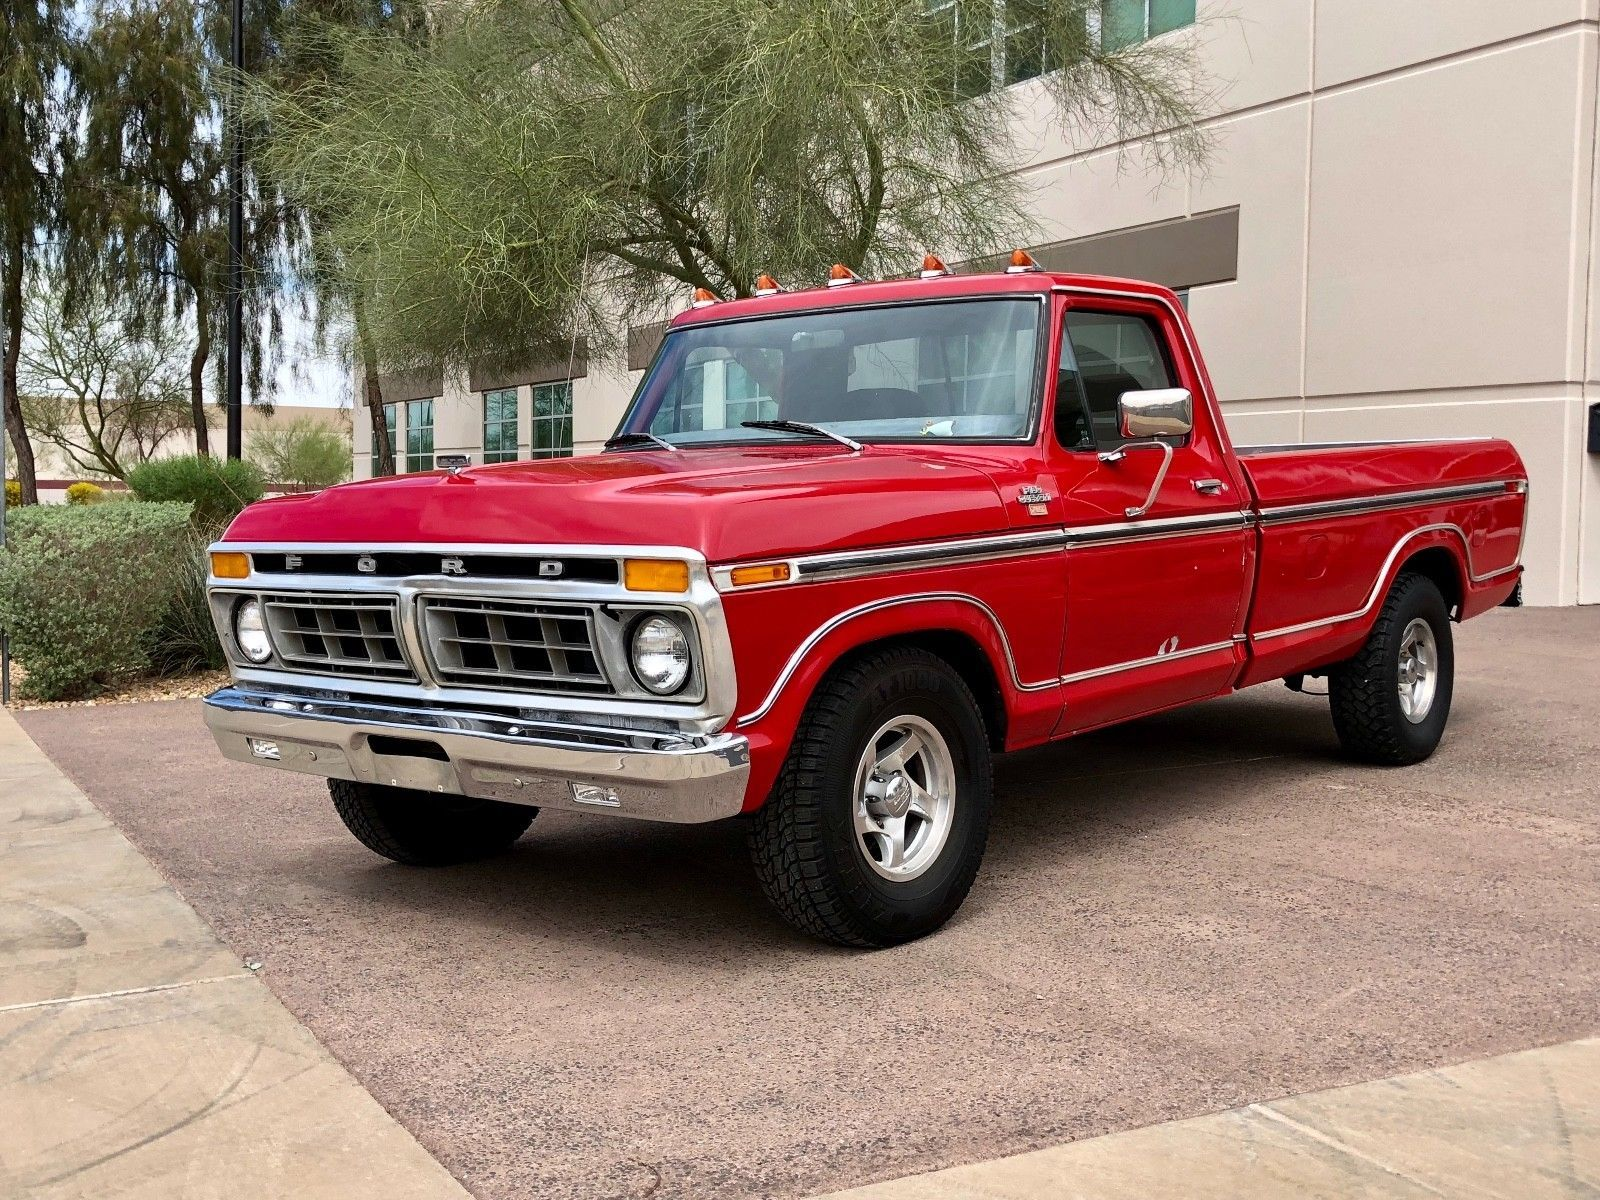 1977 ford f 150 xlt ranger classic pickup truck pickup trucks for sale classic pickup